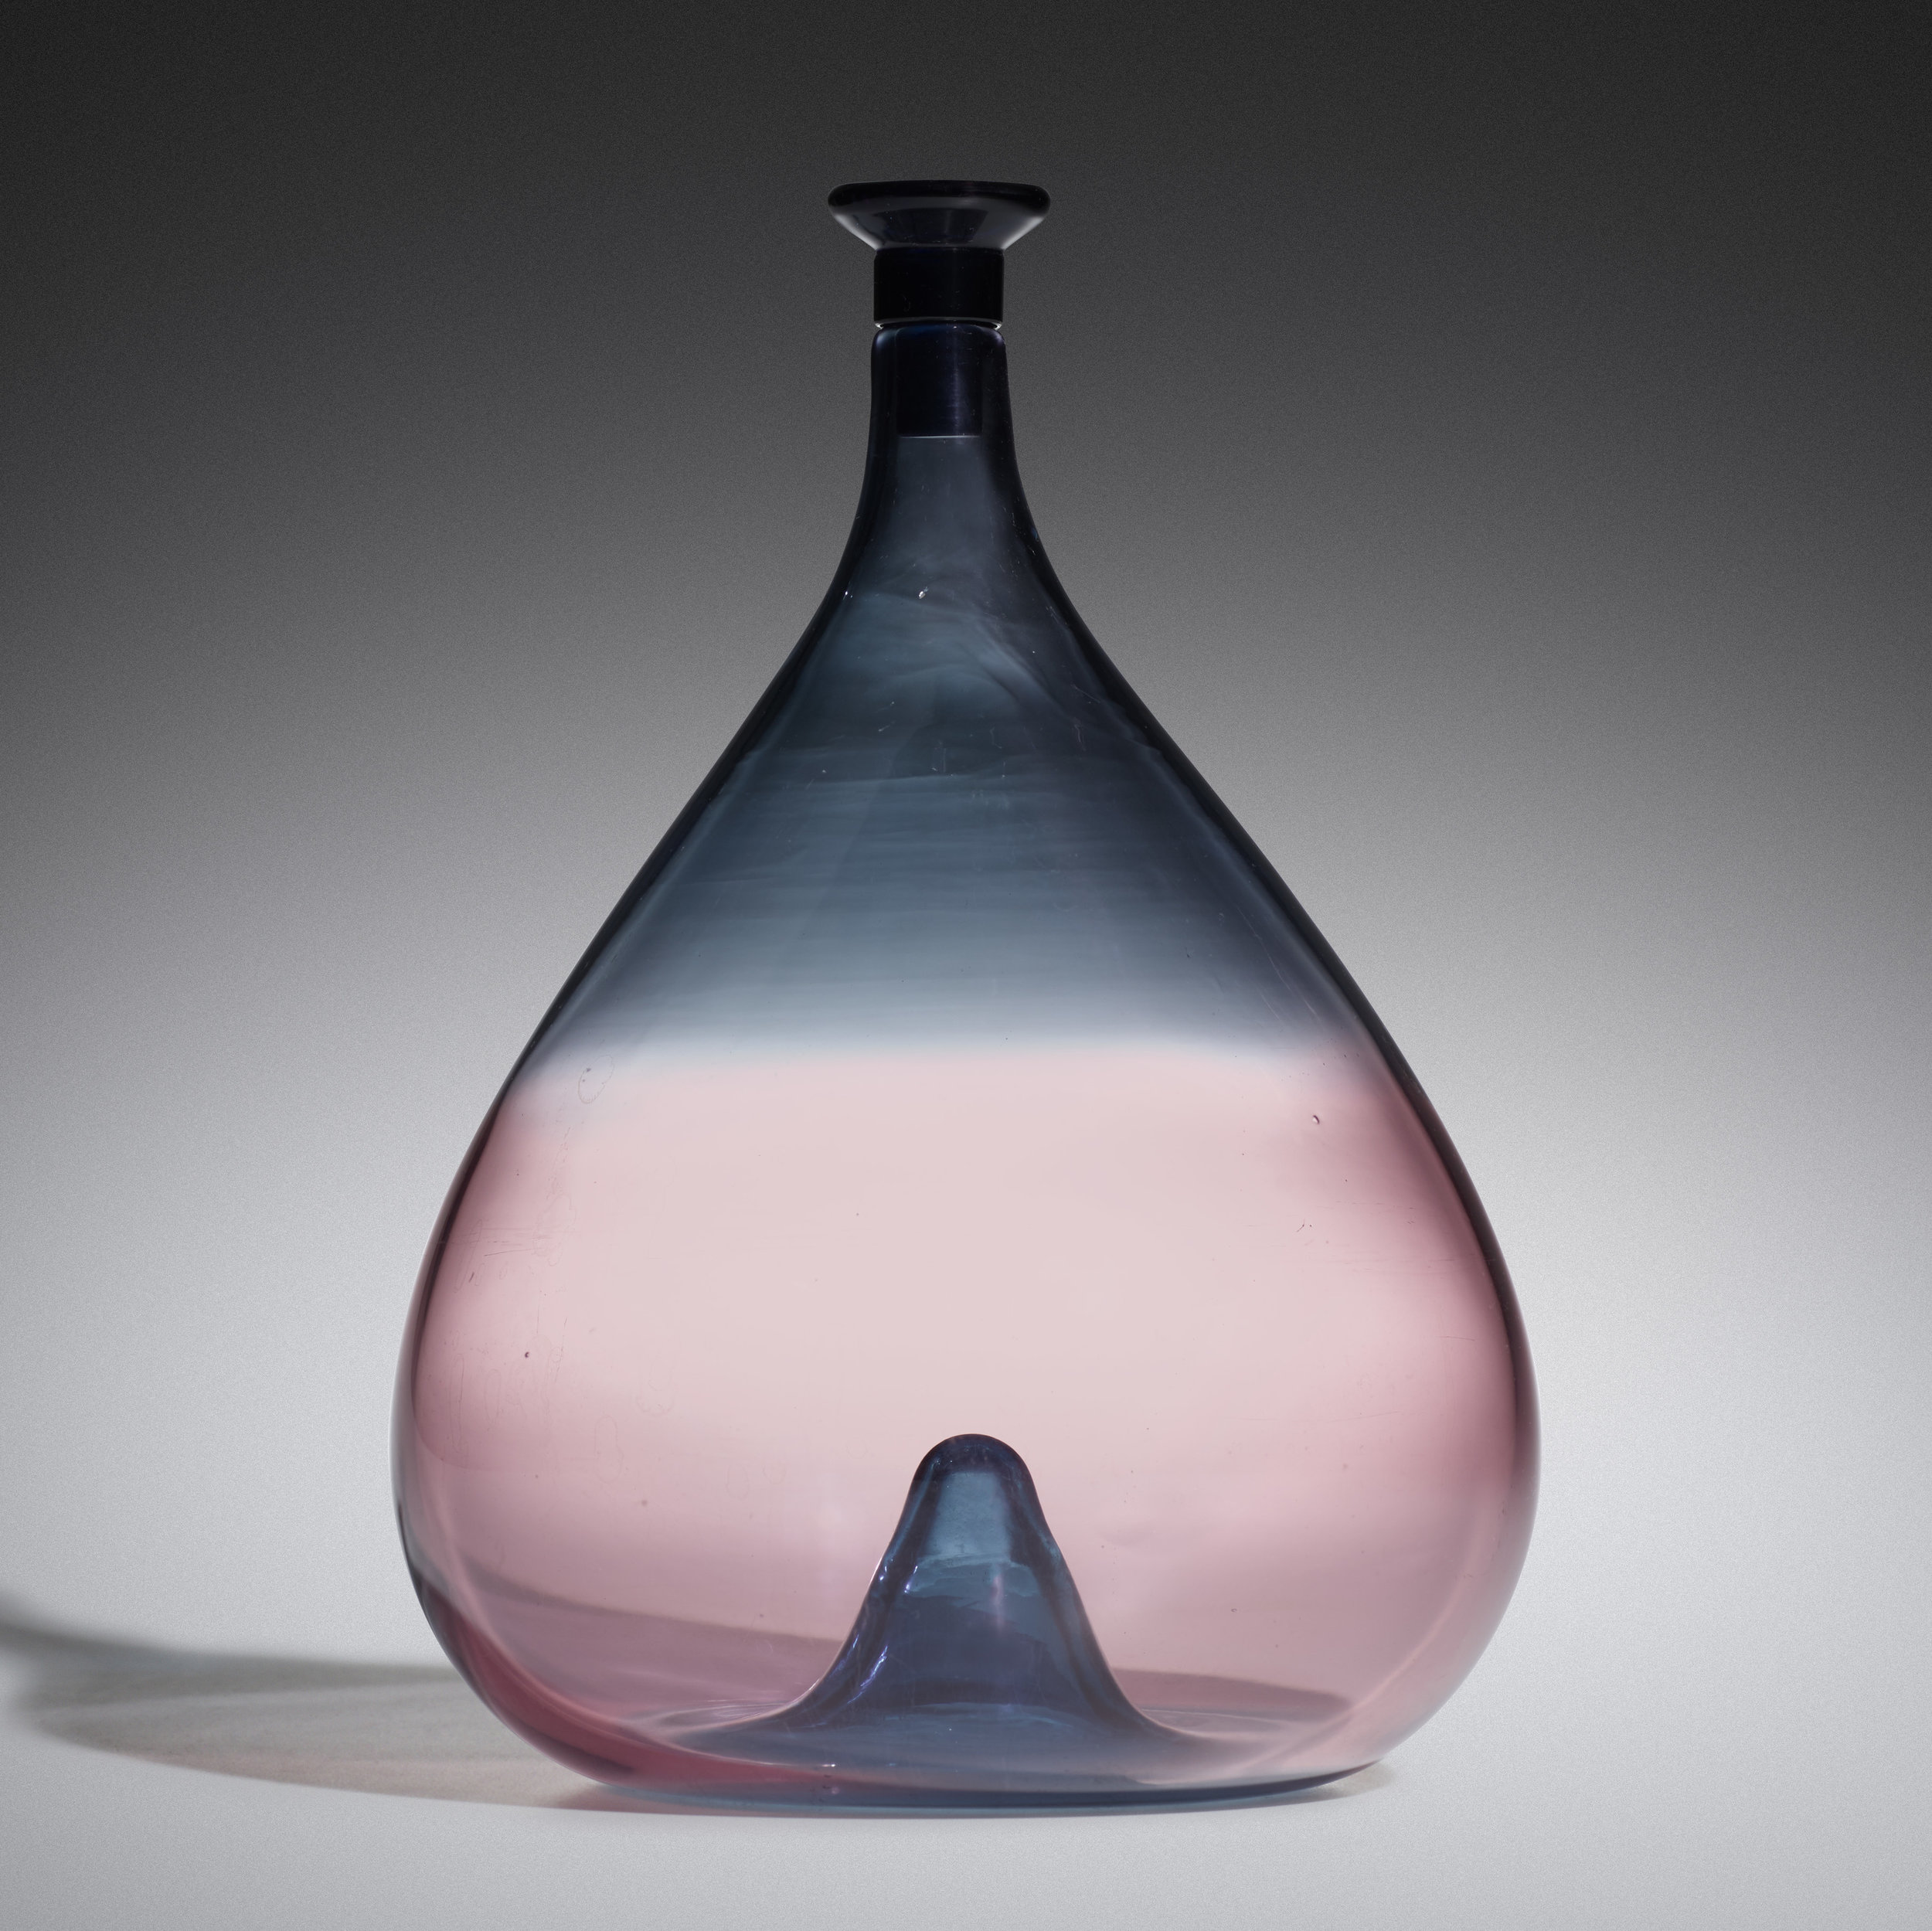 Crepuscolo vase with stopper [c. 1965] by Toni Zuccheri. estimate: $5,000–7,000